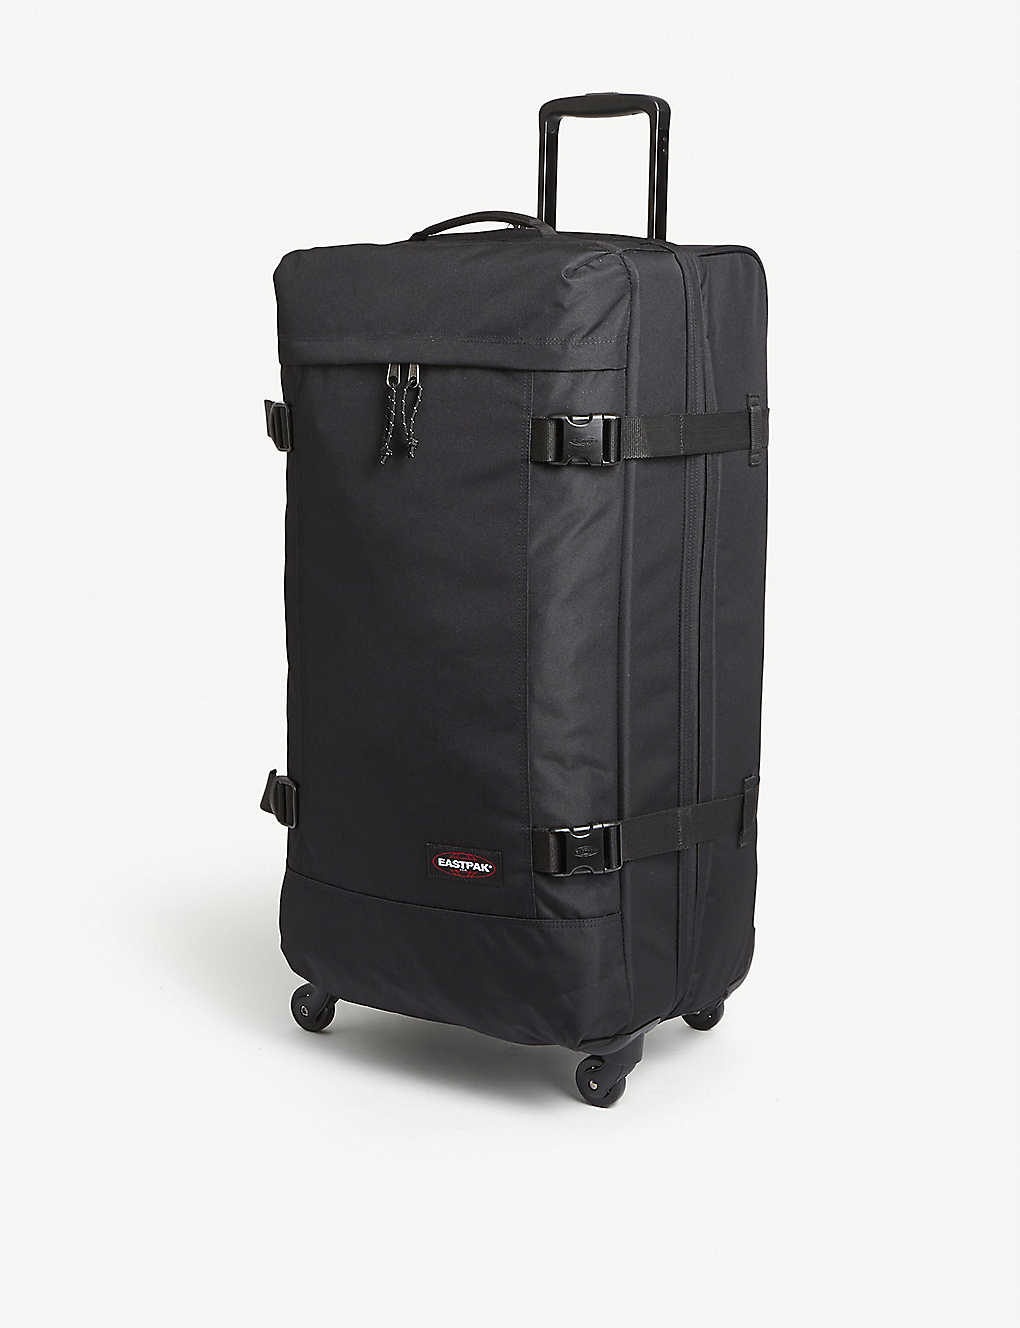 EASTPAK: Tranverz large four-wheel nylon suitcase 79cm